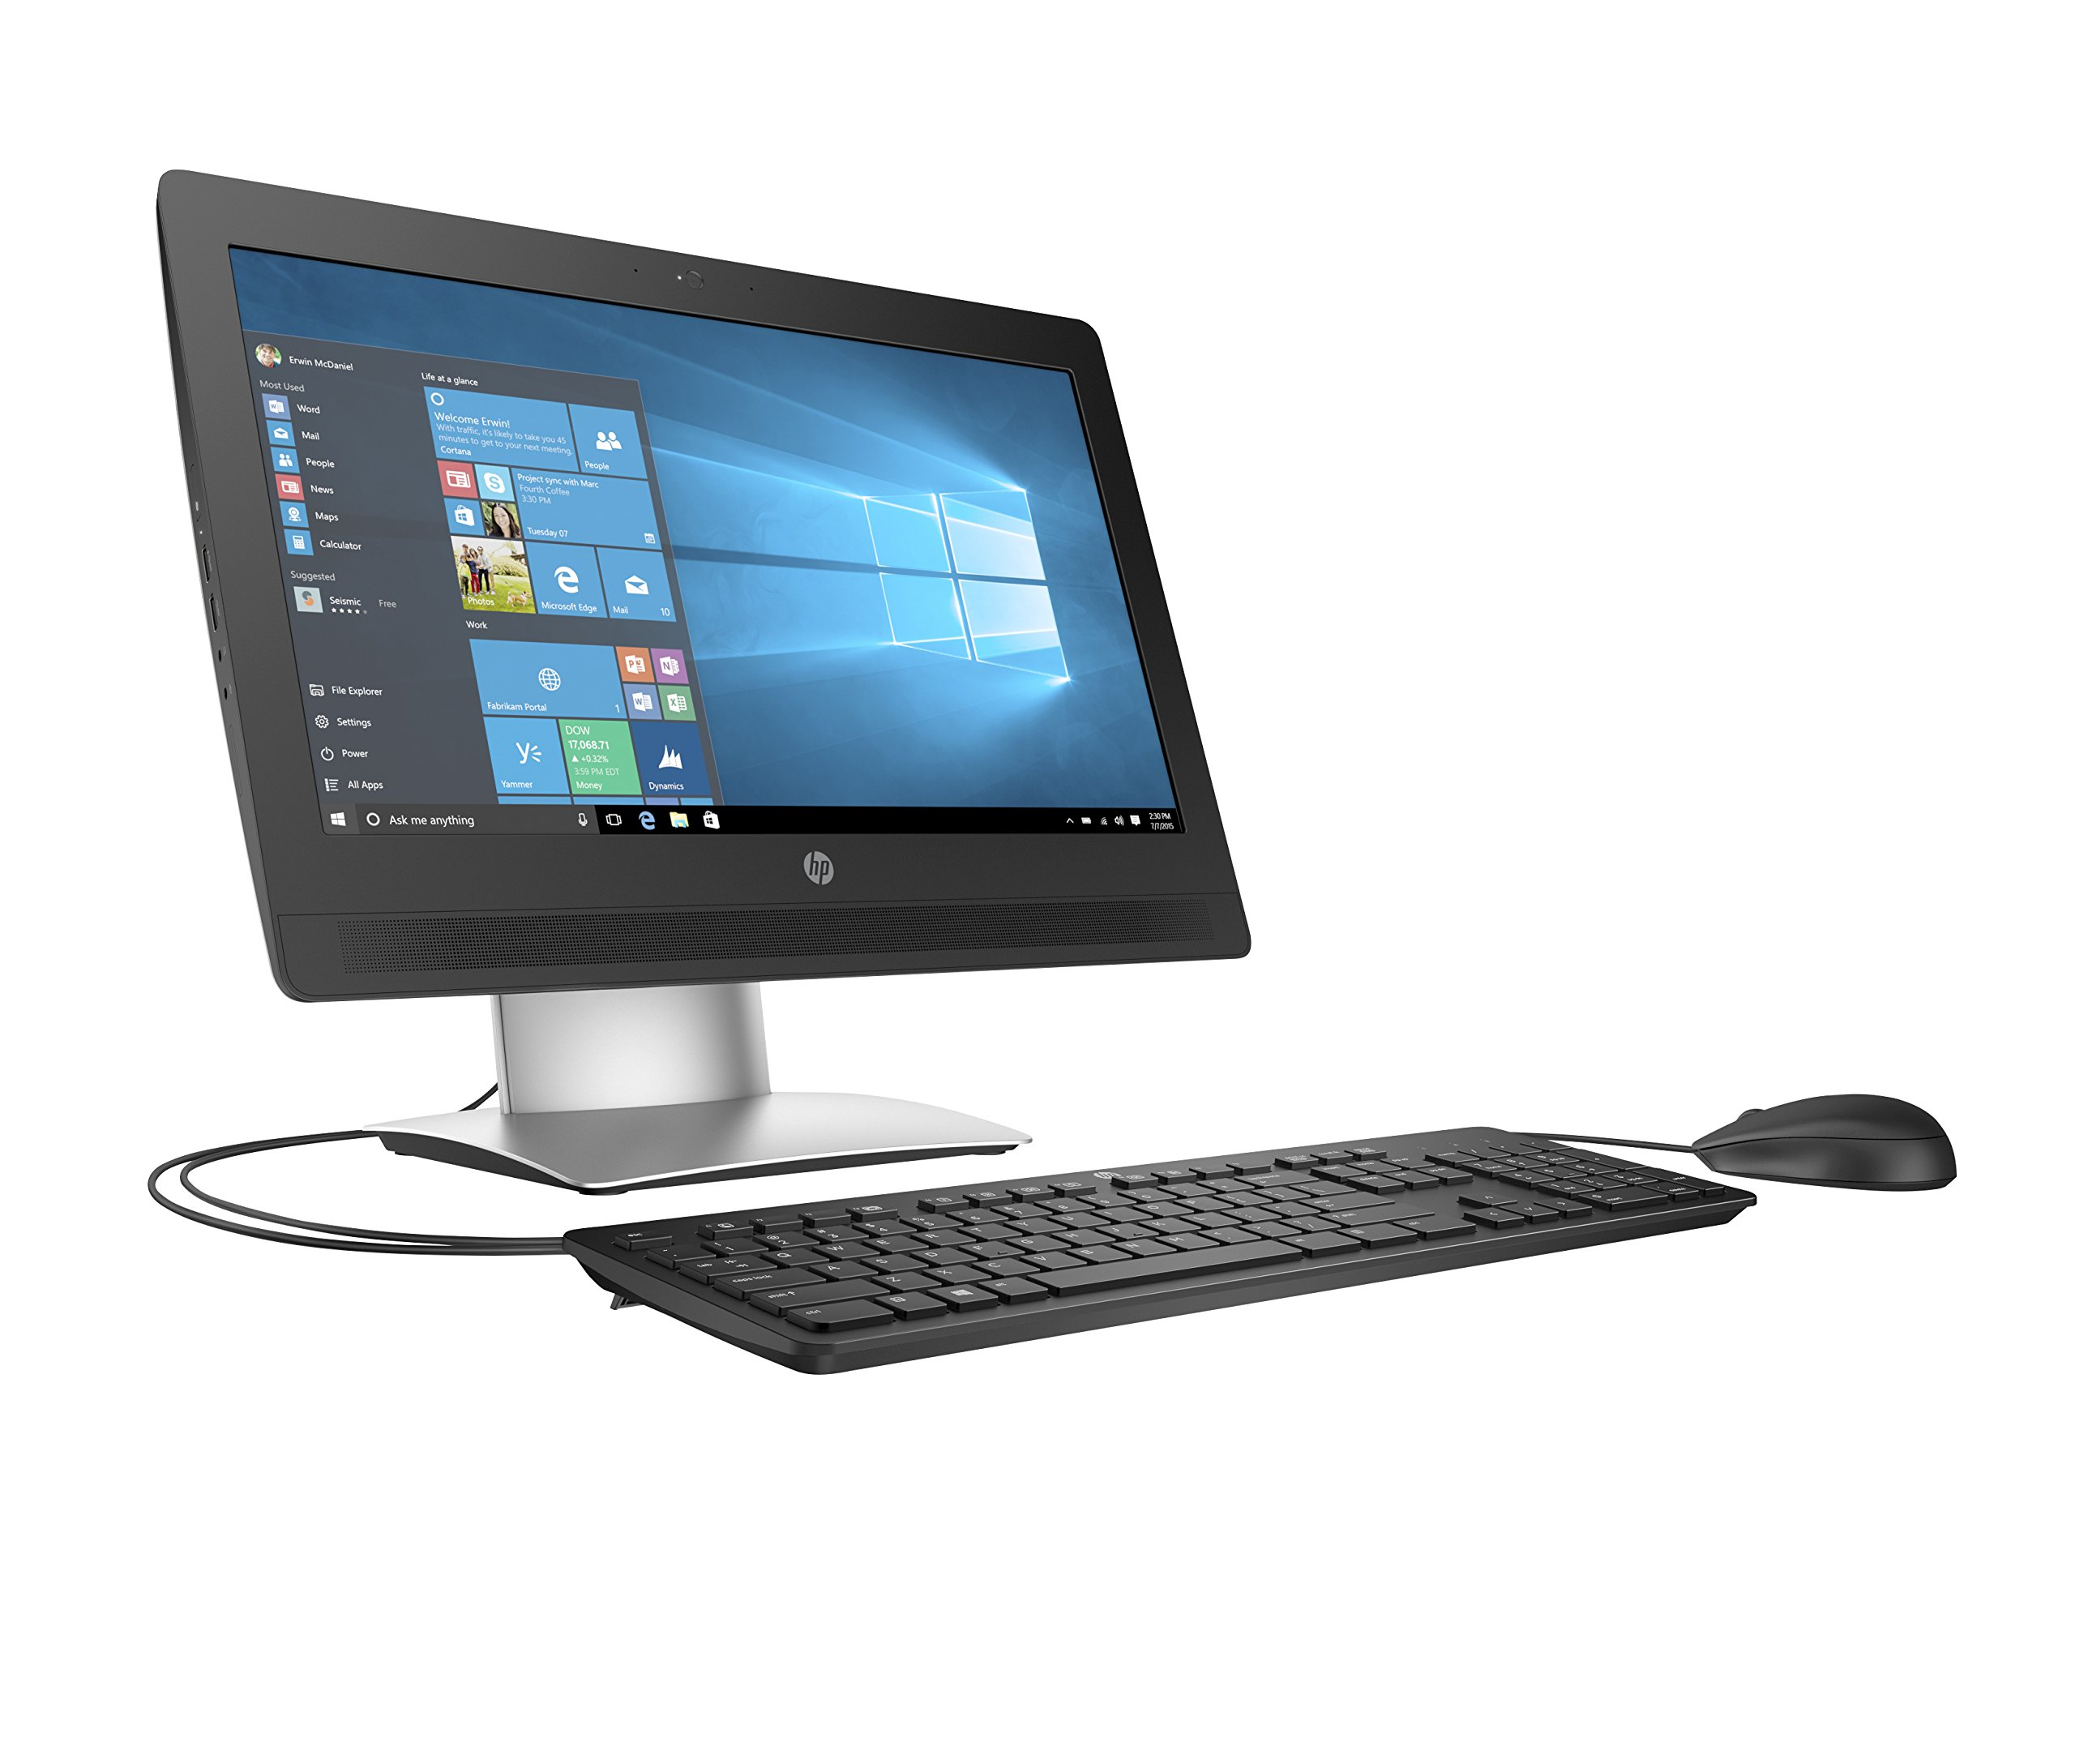 HP Business Desktop ProOne 400 G2 All-in-One Computer - Intel Pentium G4400 3.30 GHz - Desktop by HP